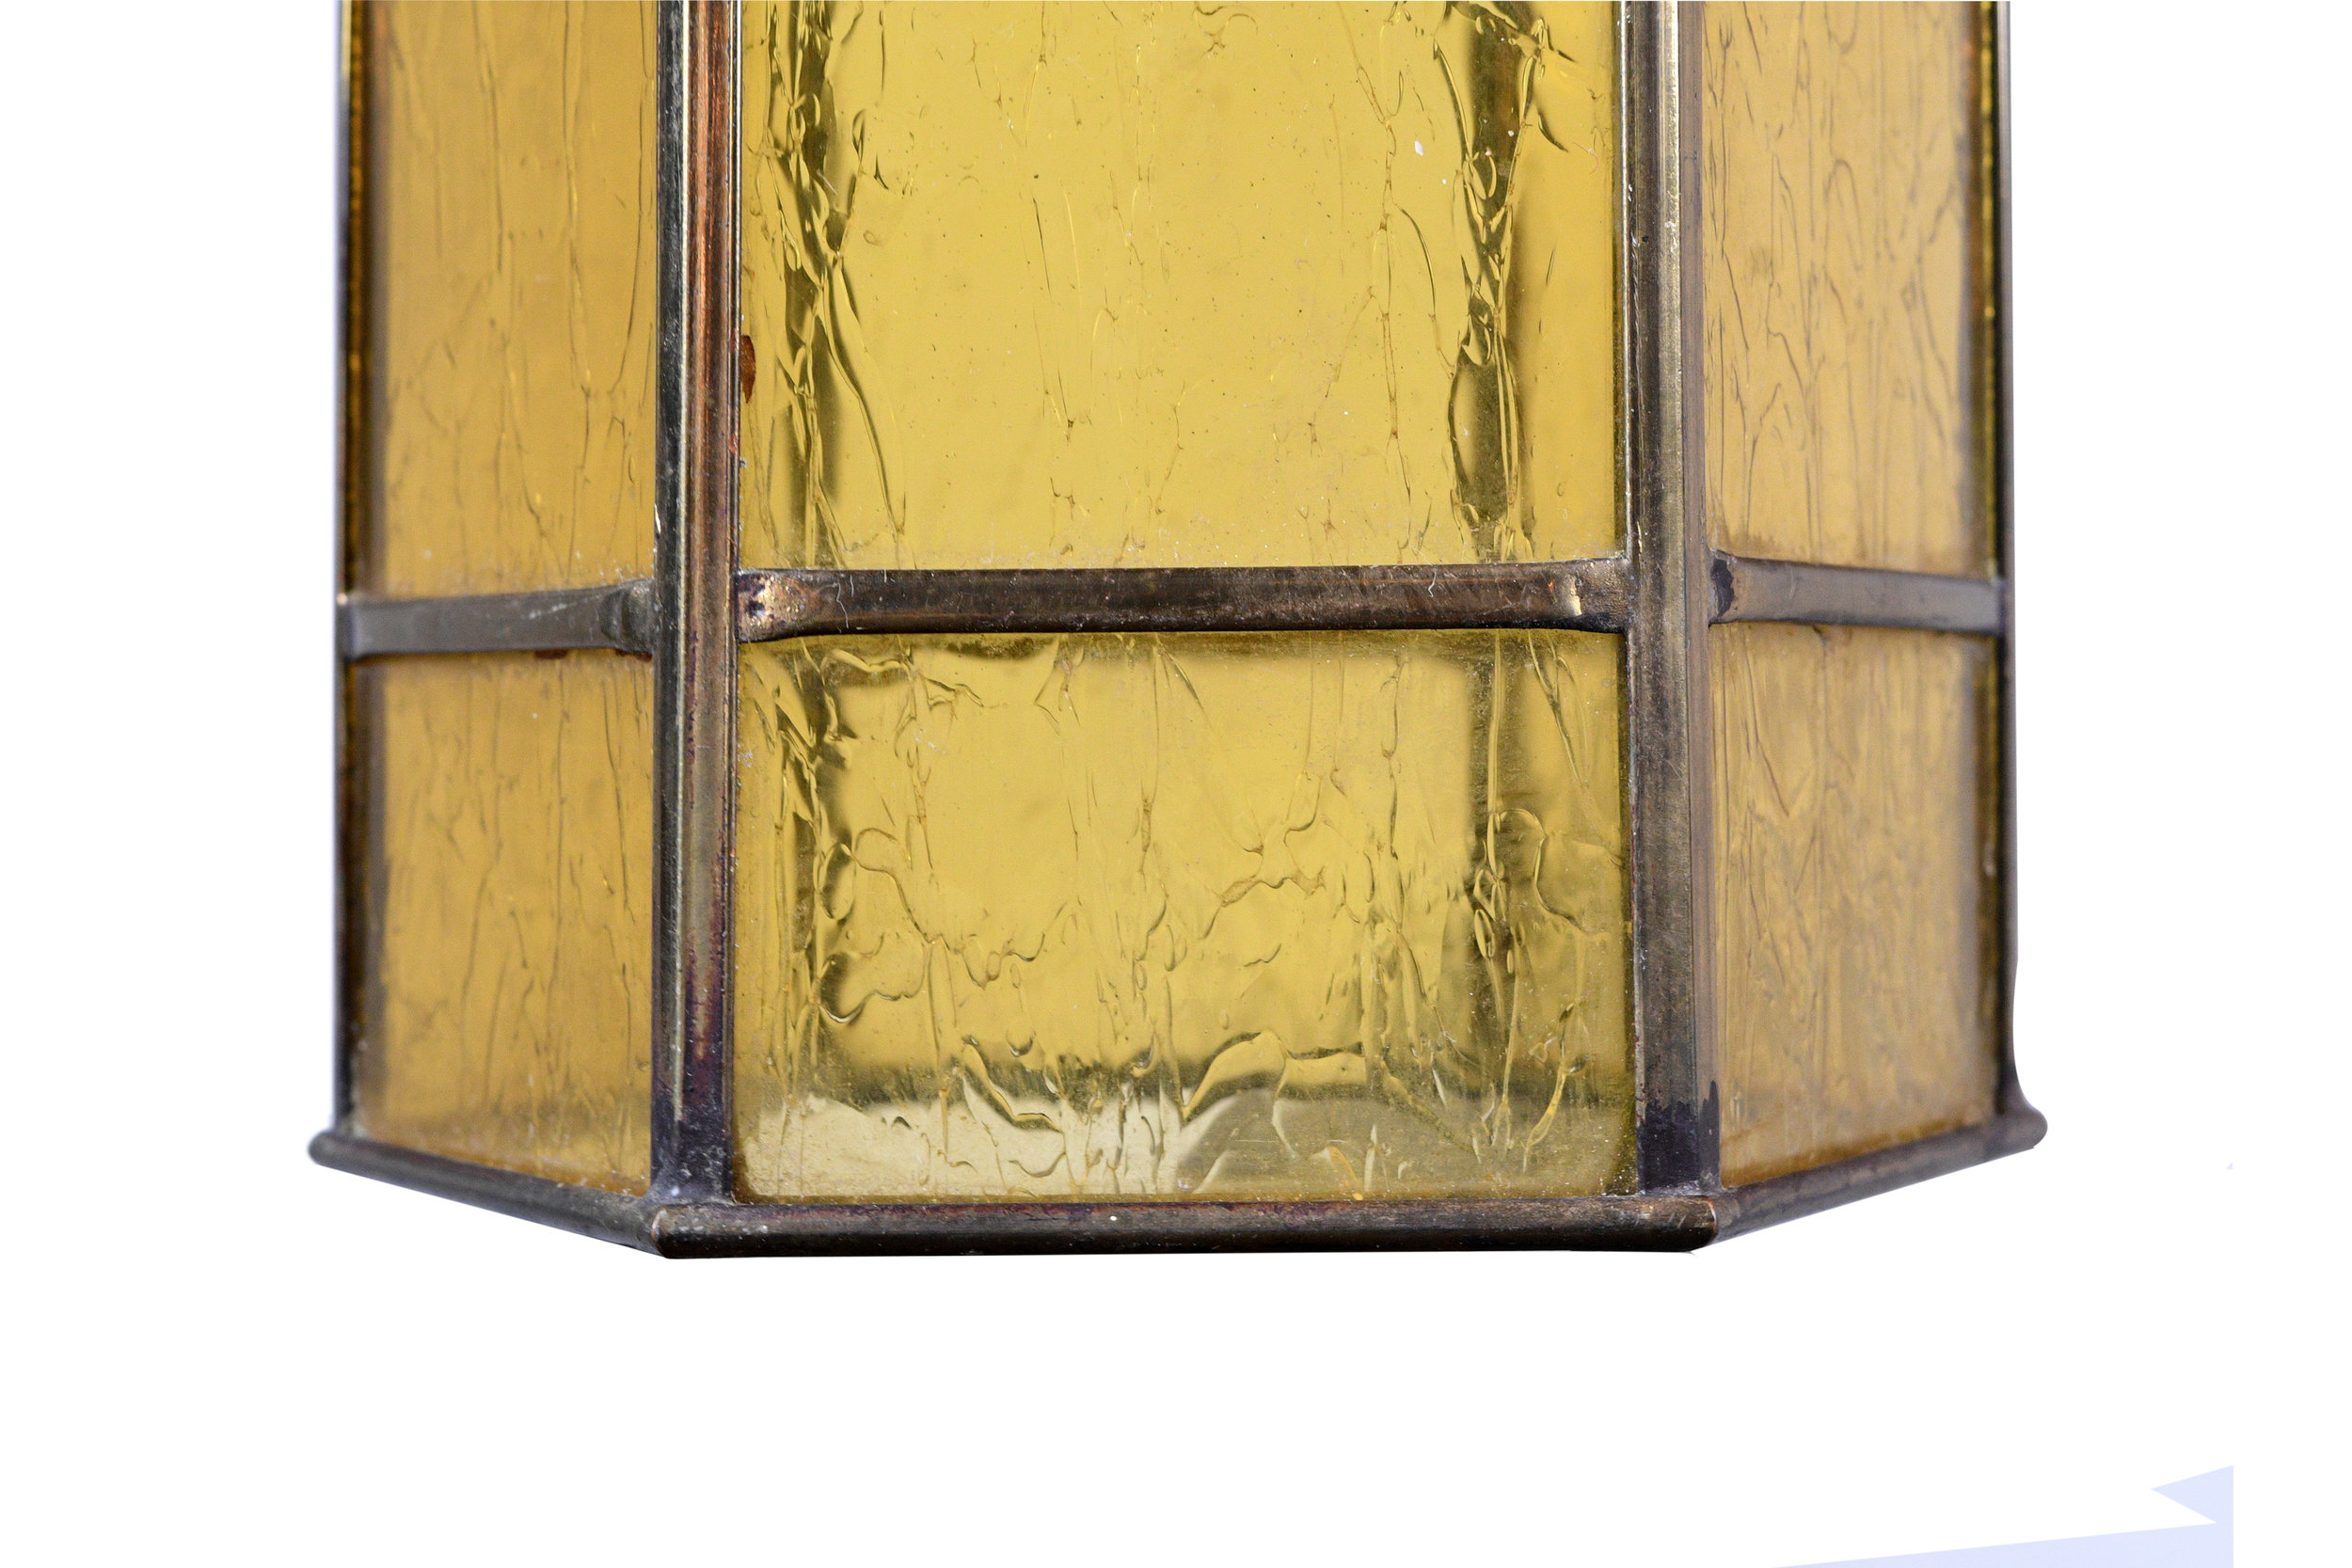 47800-federal-pendant-with-amber-glass-10.jpg